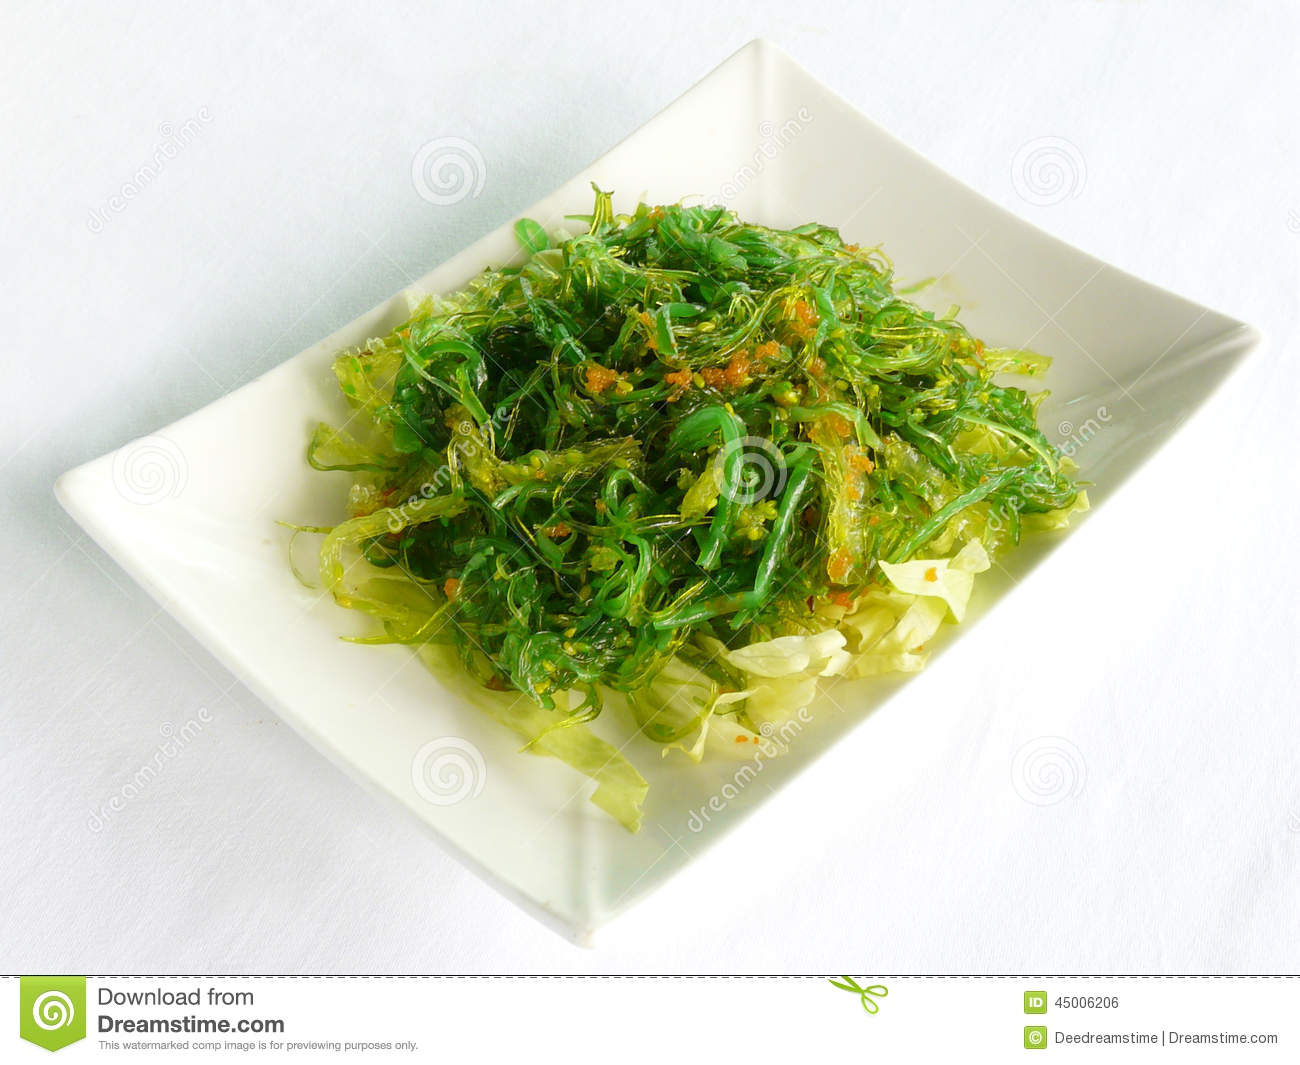 how to say seaweed in japanese